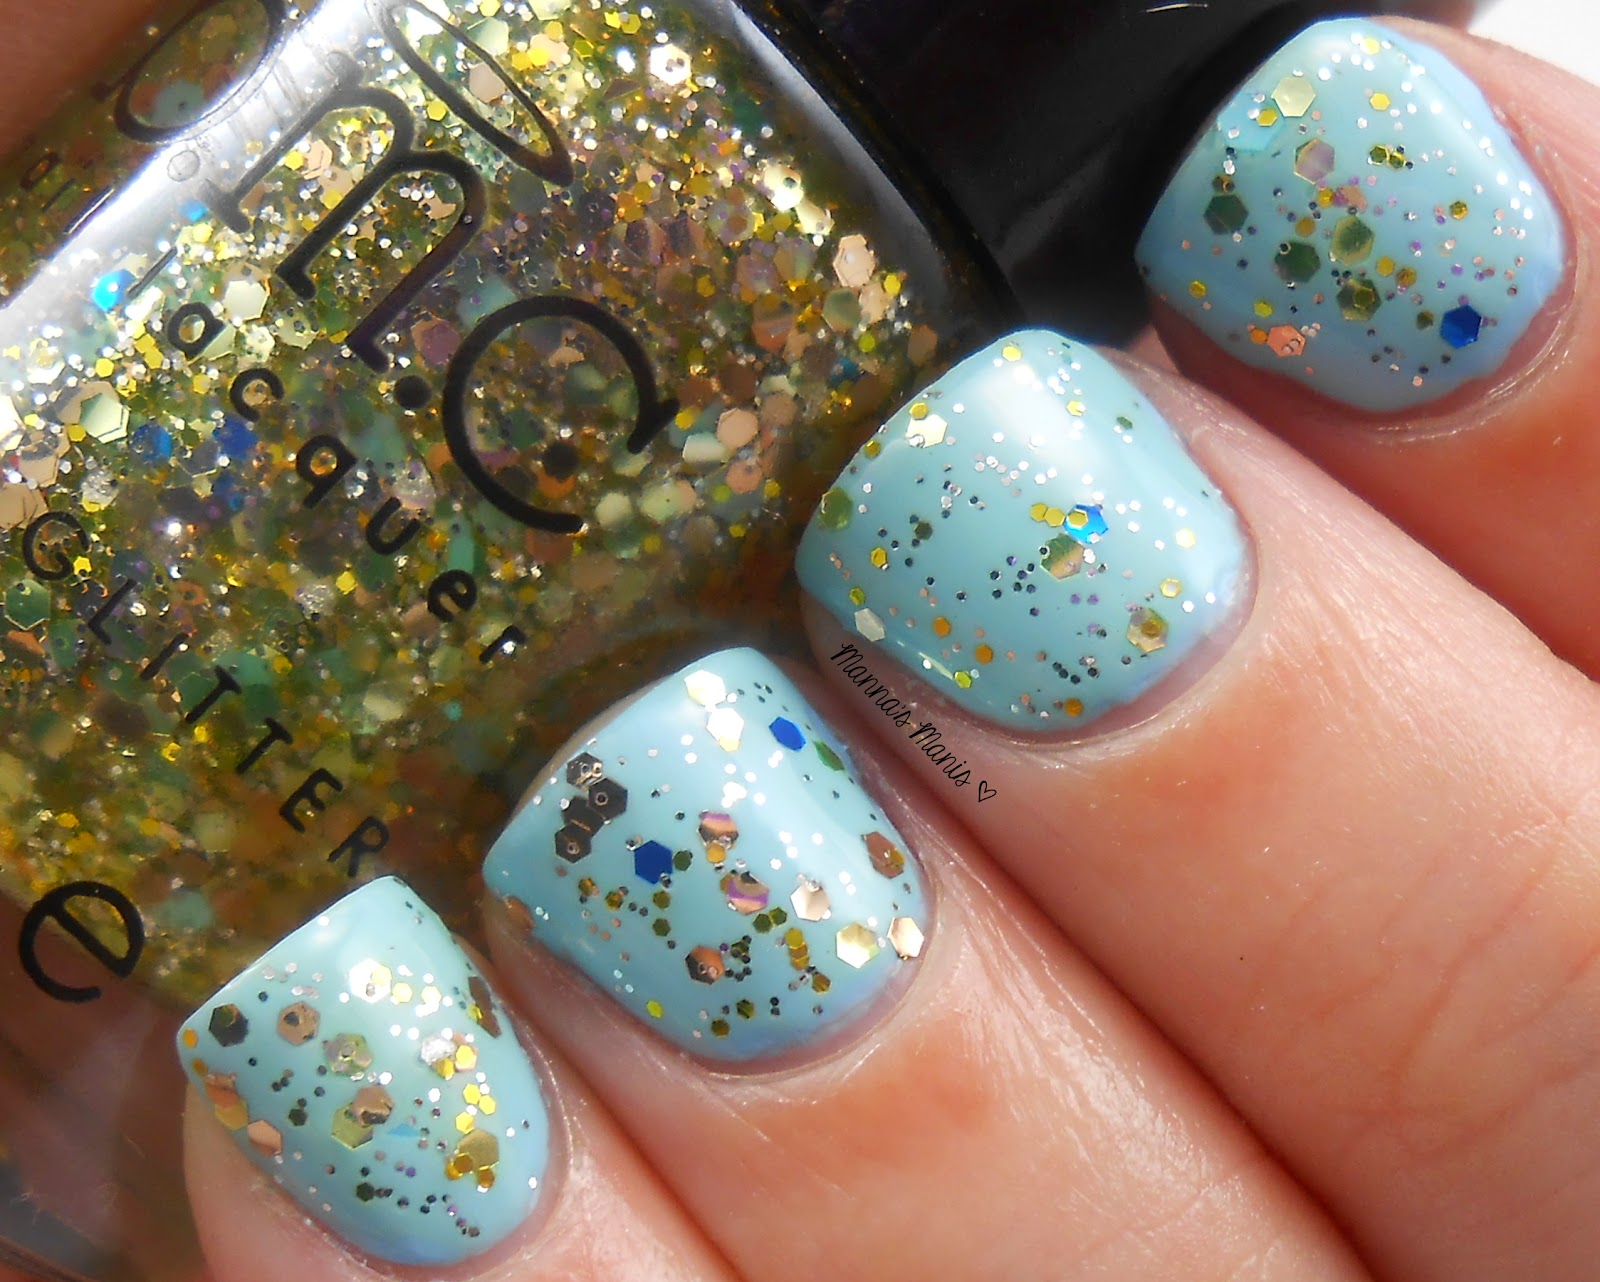 BMC i bleed glitter, a gold and blue glitter nail polish